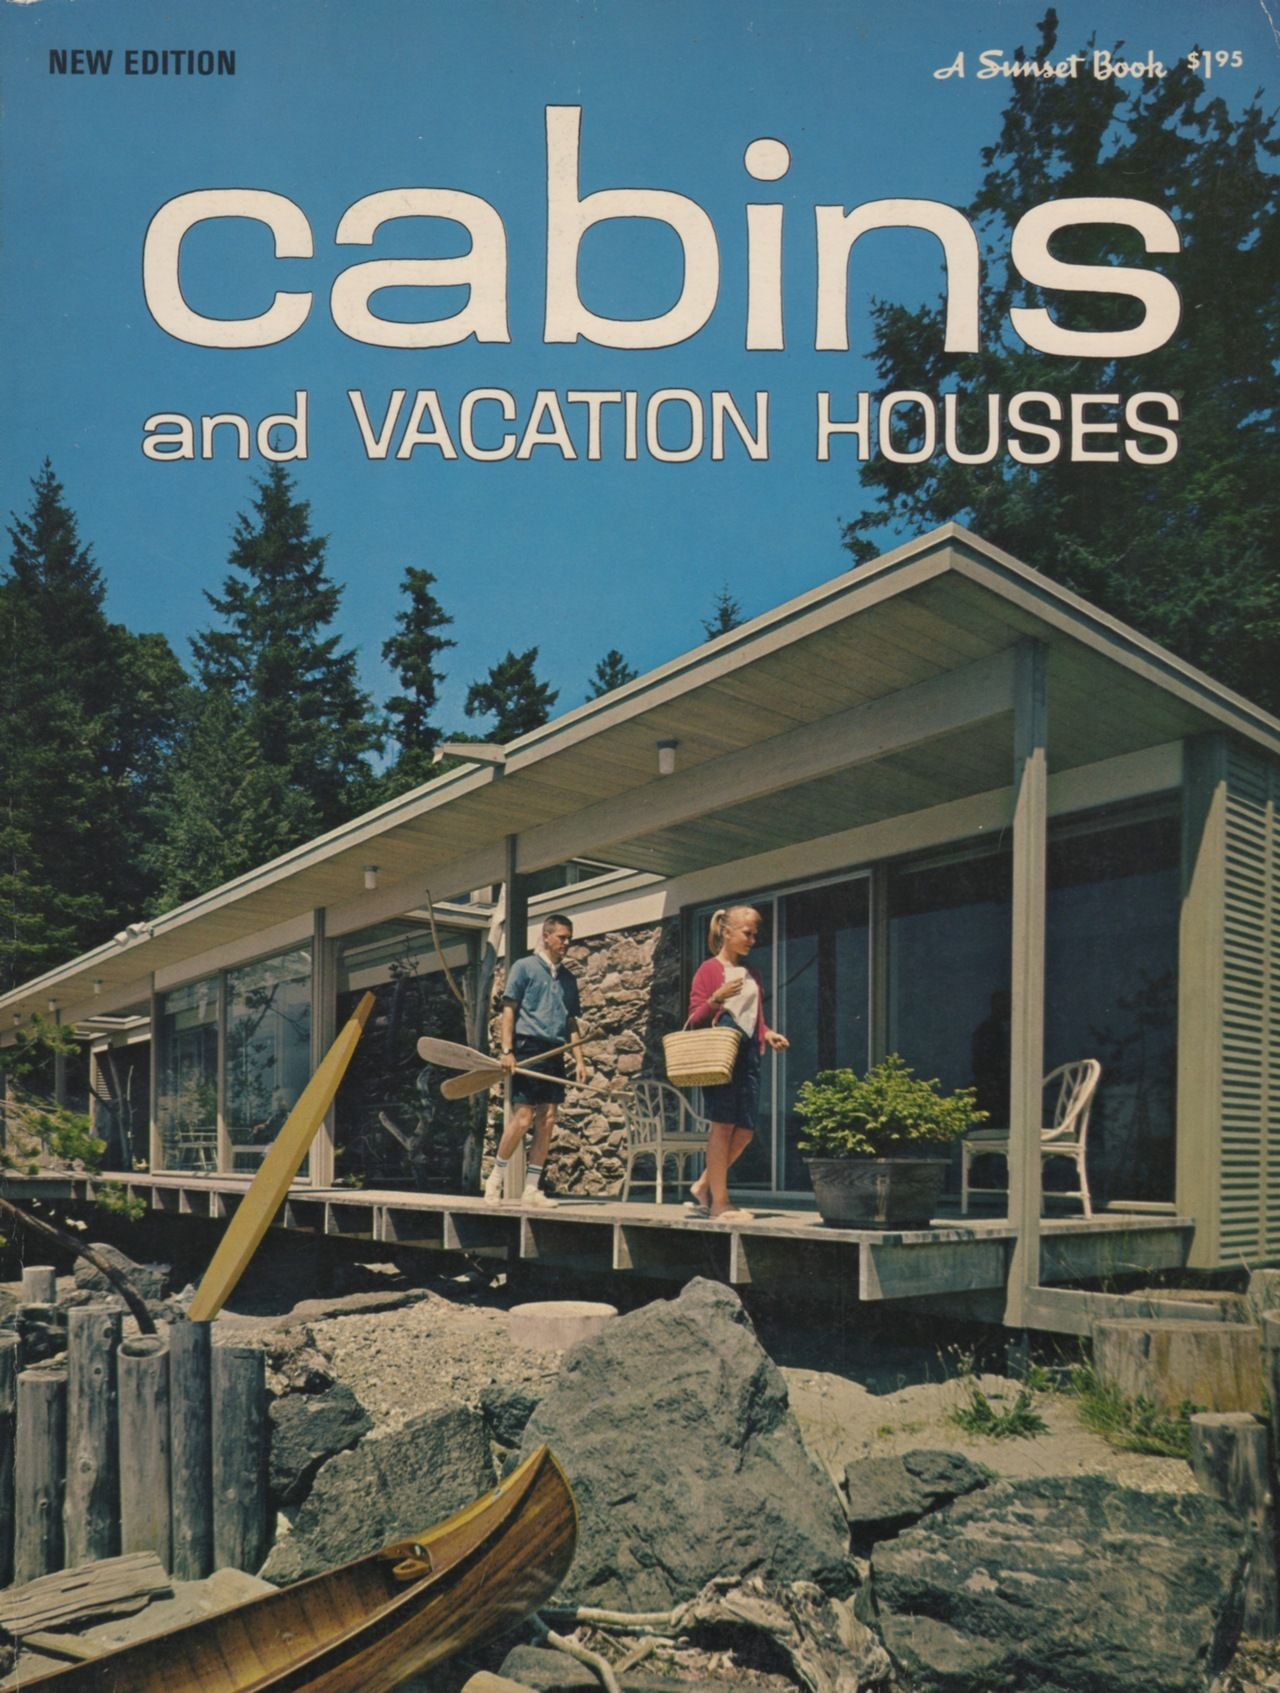 Cabins and Vacation Houses (A Sunset Book). Lane, 1967 ... on vacation home plans, houzz home plans, paris home plans, summer home plans, diy home plans, garden home plans, dwell home plans, this old house home plans, house beautiful home plans, hgtv home plans, family home plans, landscape architecture home plans, architectural digest home plans, country living home plans,